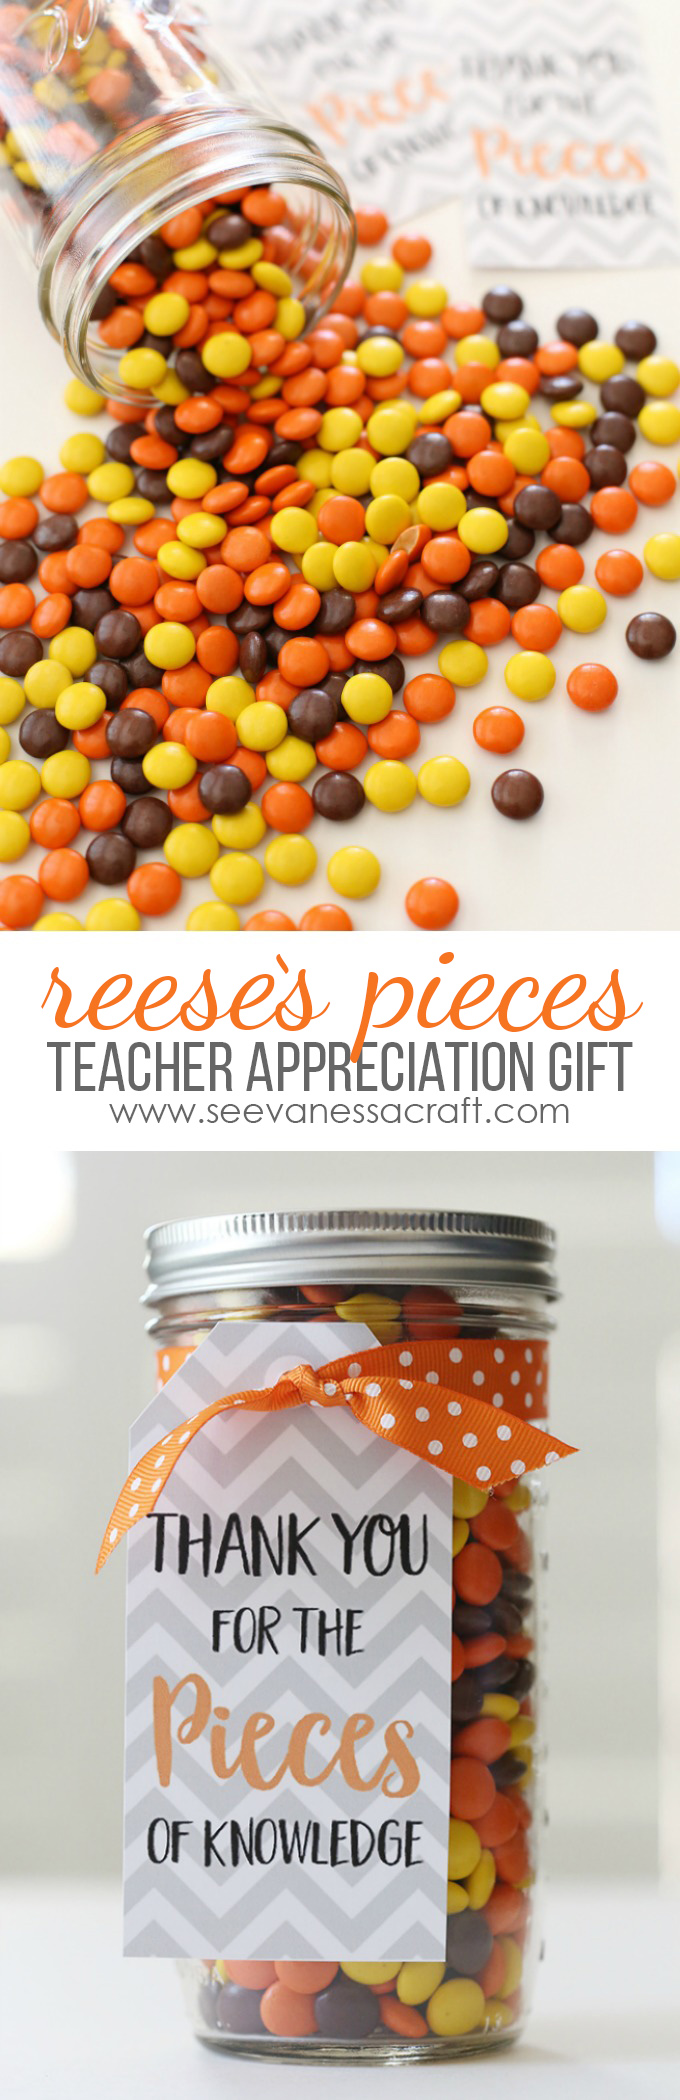 Teacher Appreciation Reese's Pieces Gift Idea - Free Printable Tags